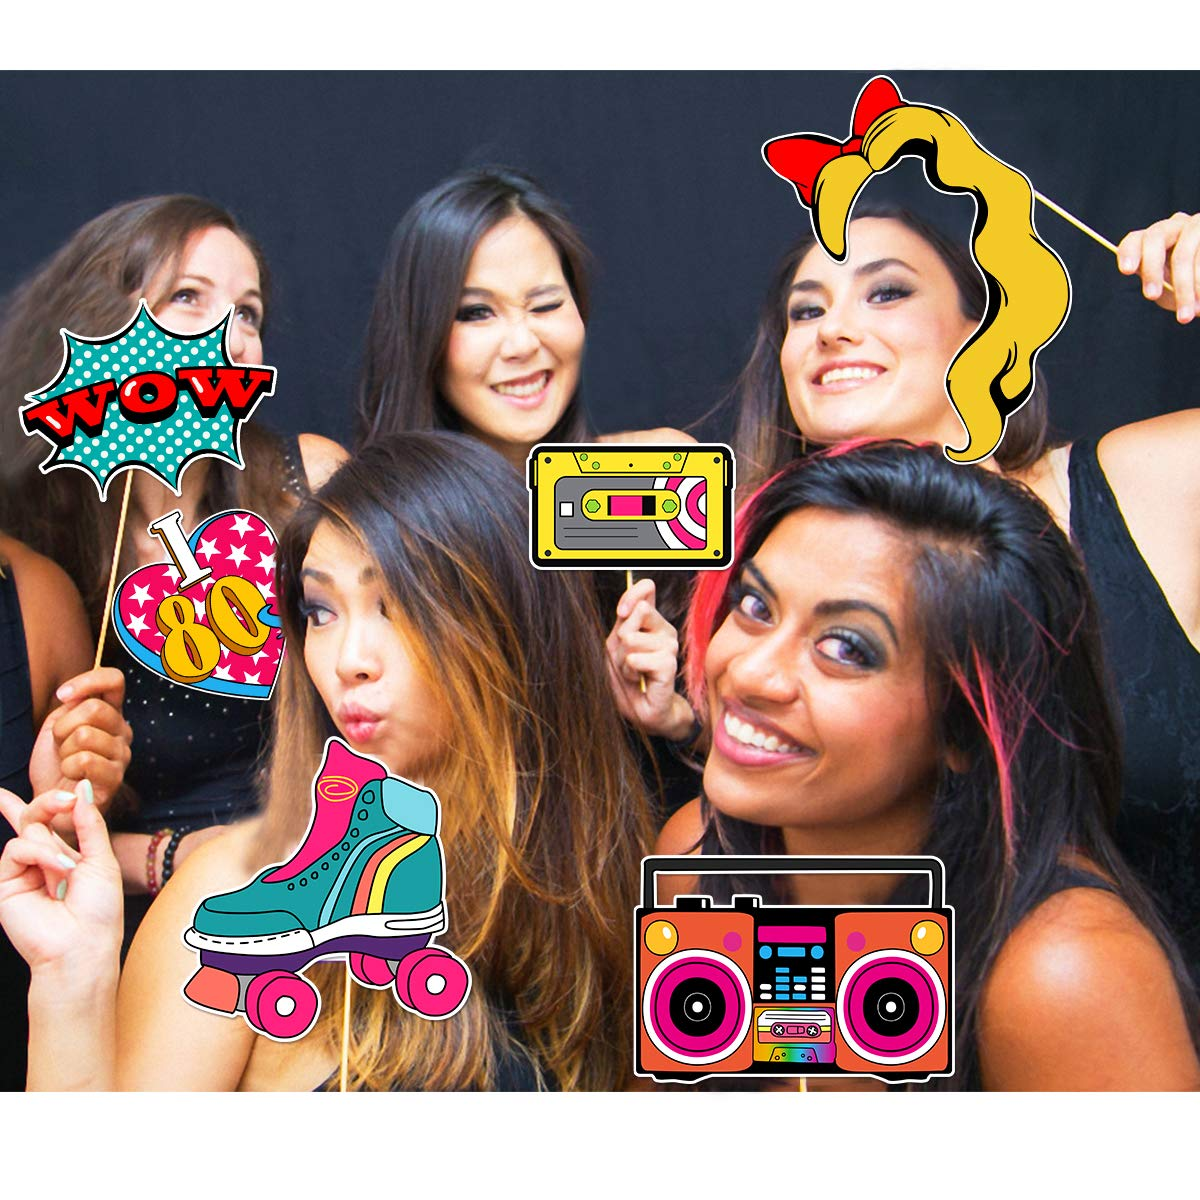 PRETYZOOM 80s Retro Party Photo Booth Props Birthday Party Decoration Accessories DIY Creative Party Supplies with Wooden Sticks Party Pose Sign 21PCS Four Colors Printed